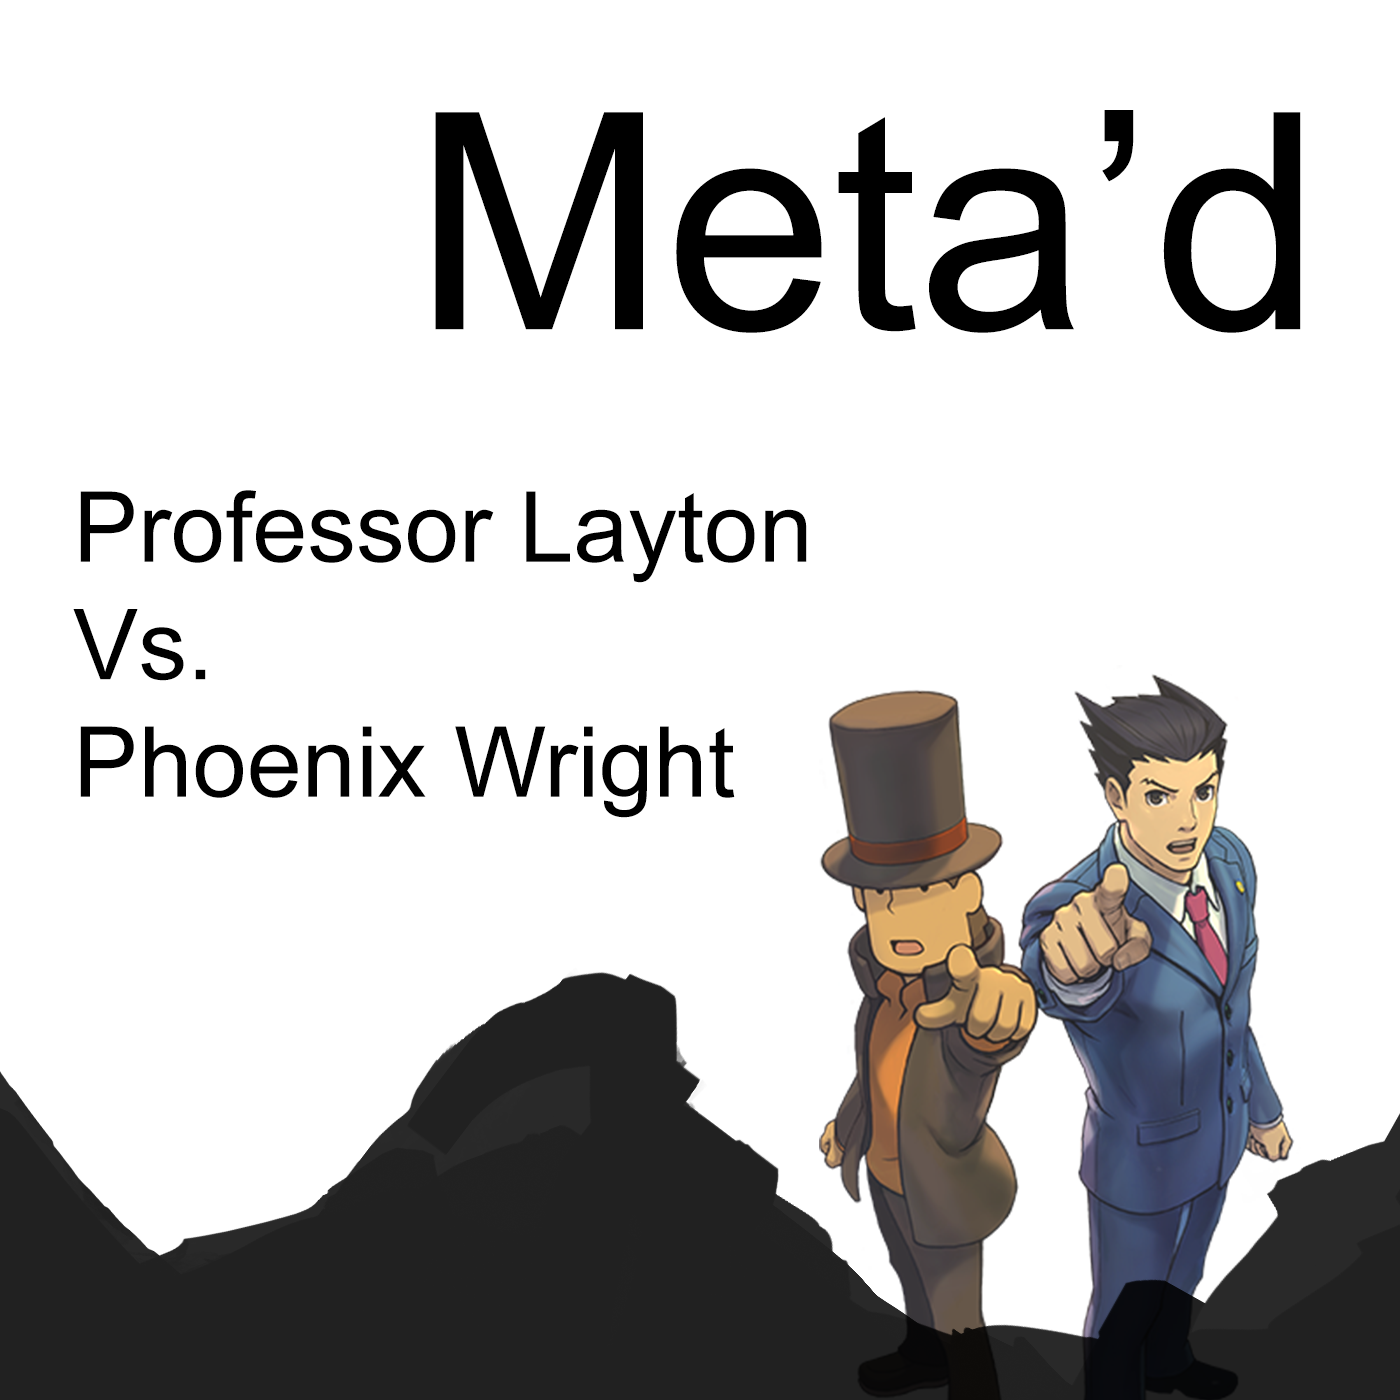 Professor Layton and Phoenix Wright